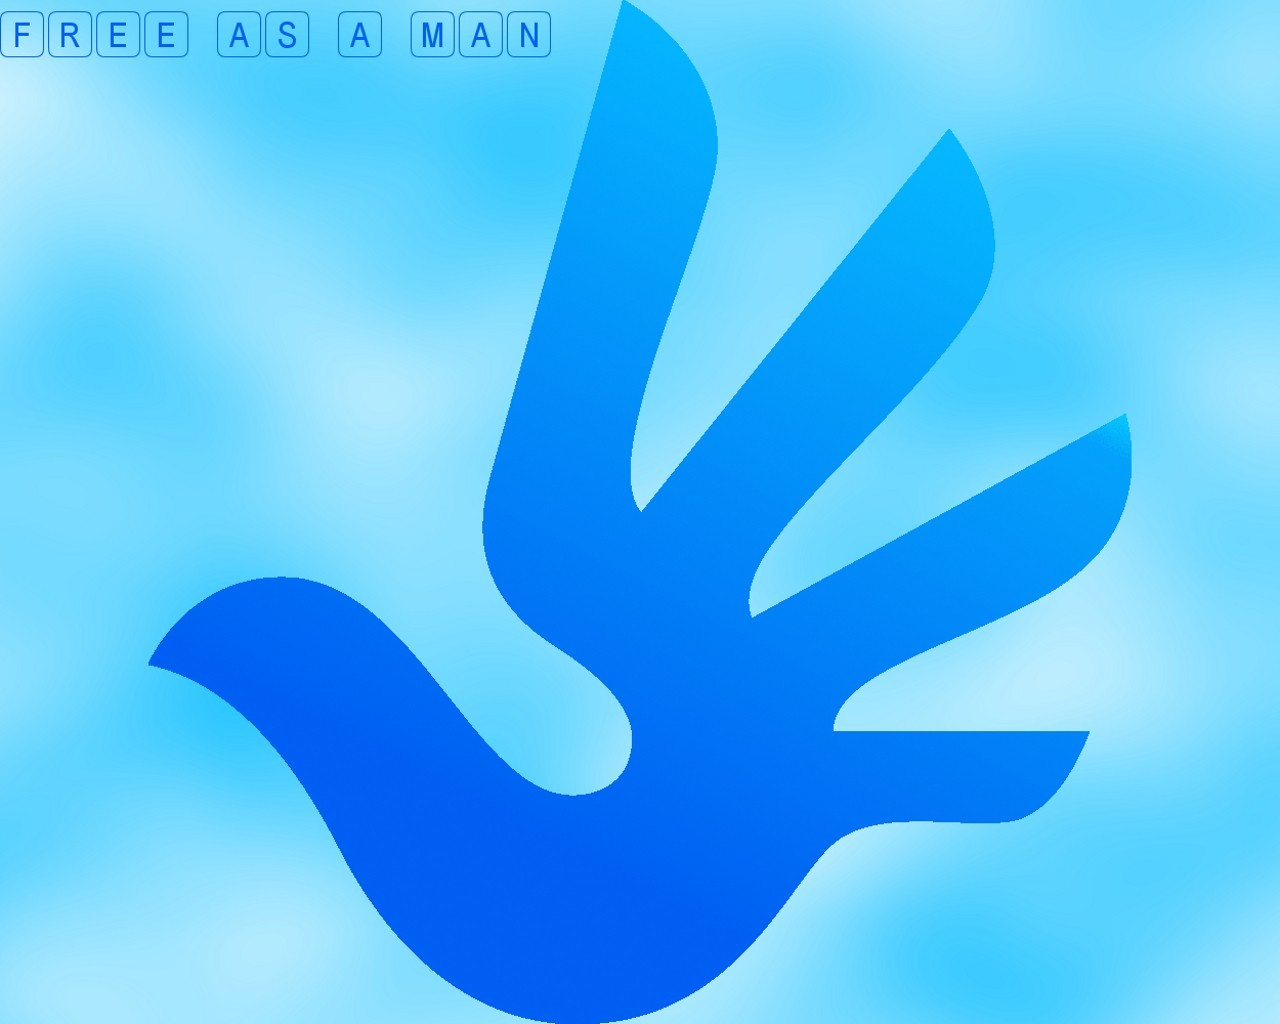 Birds doves hands logos HD Wallpaper